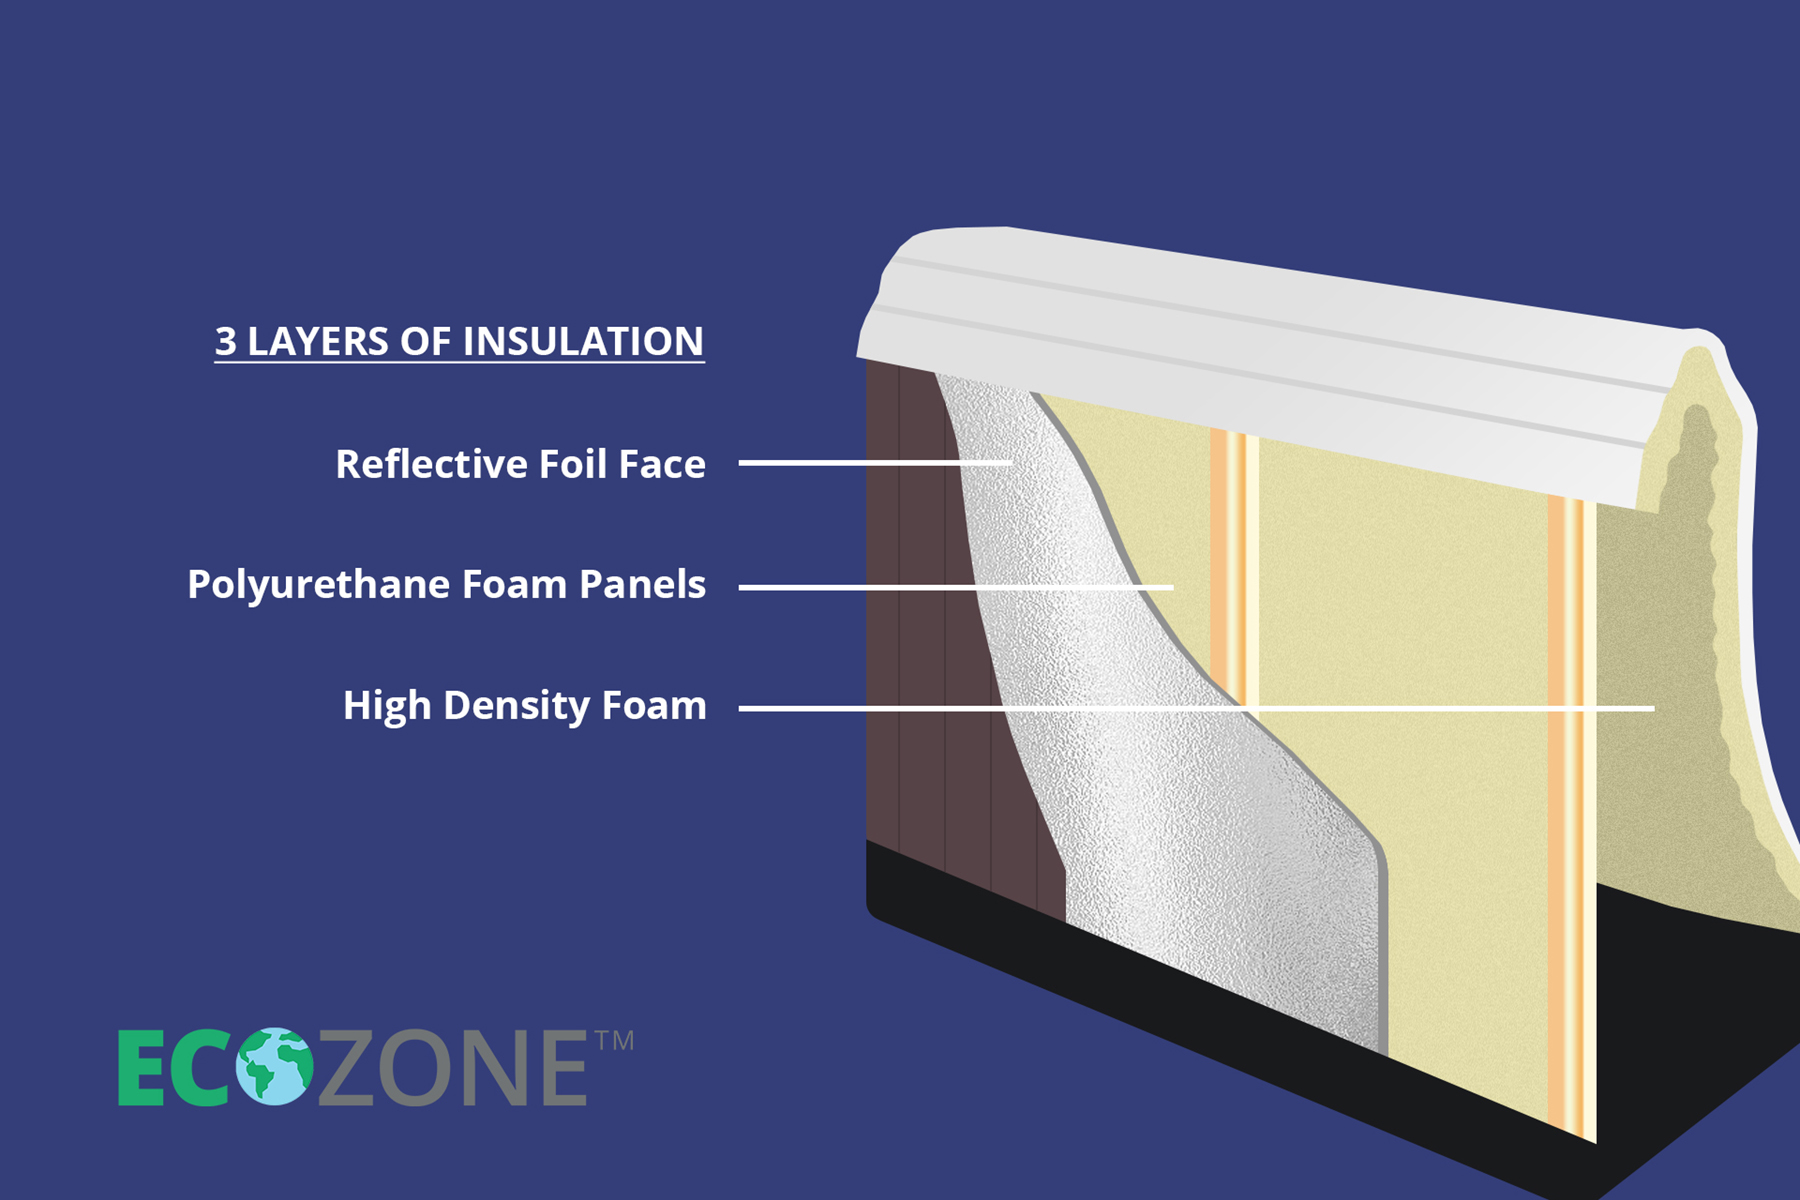 Image showing British Hot Tubs Eco Zone Insulation.